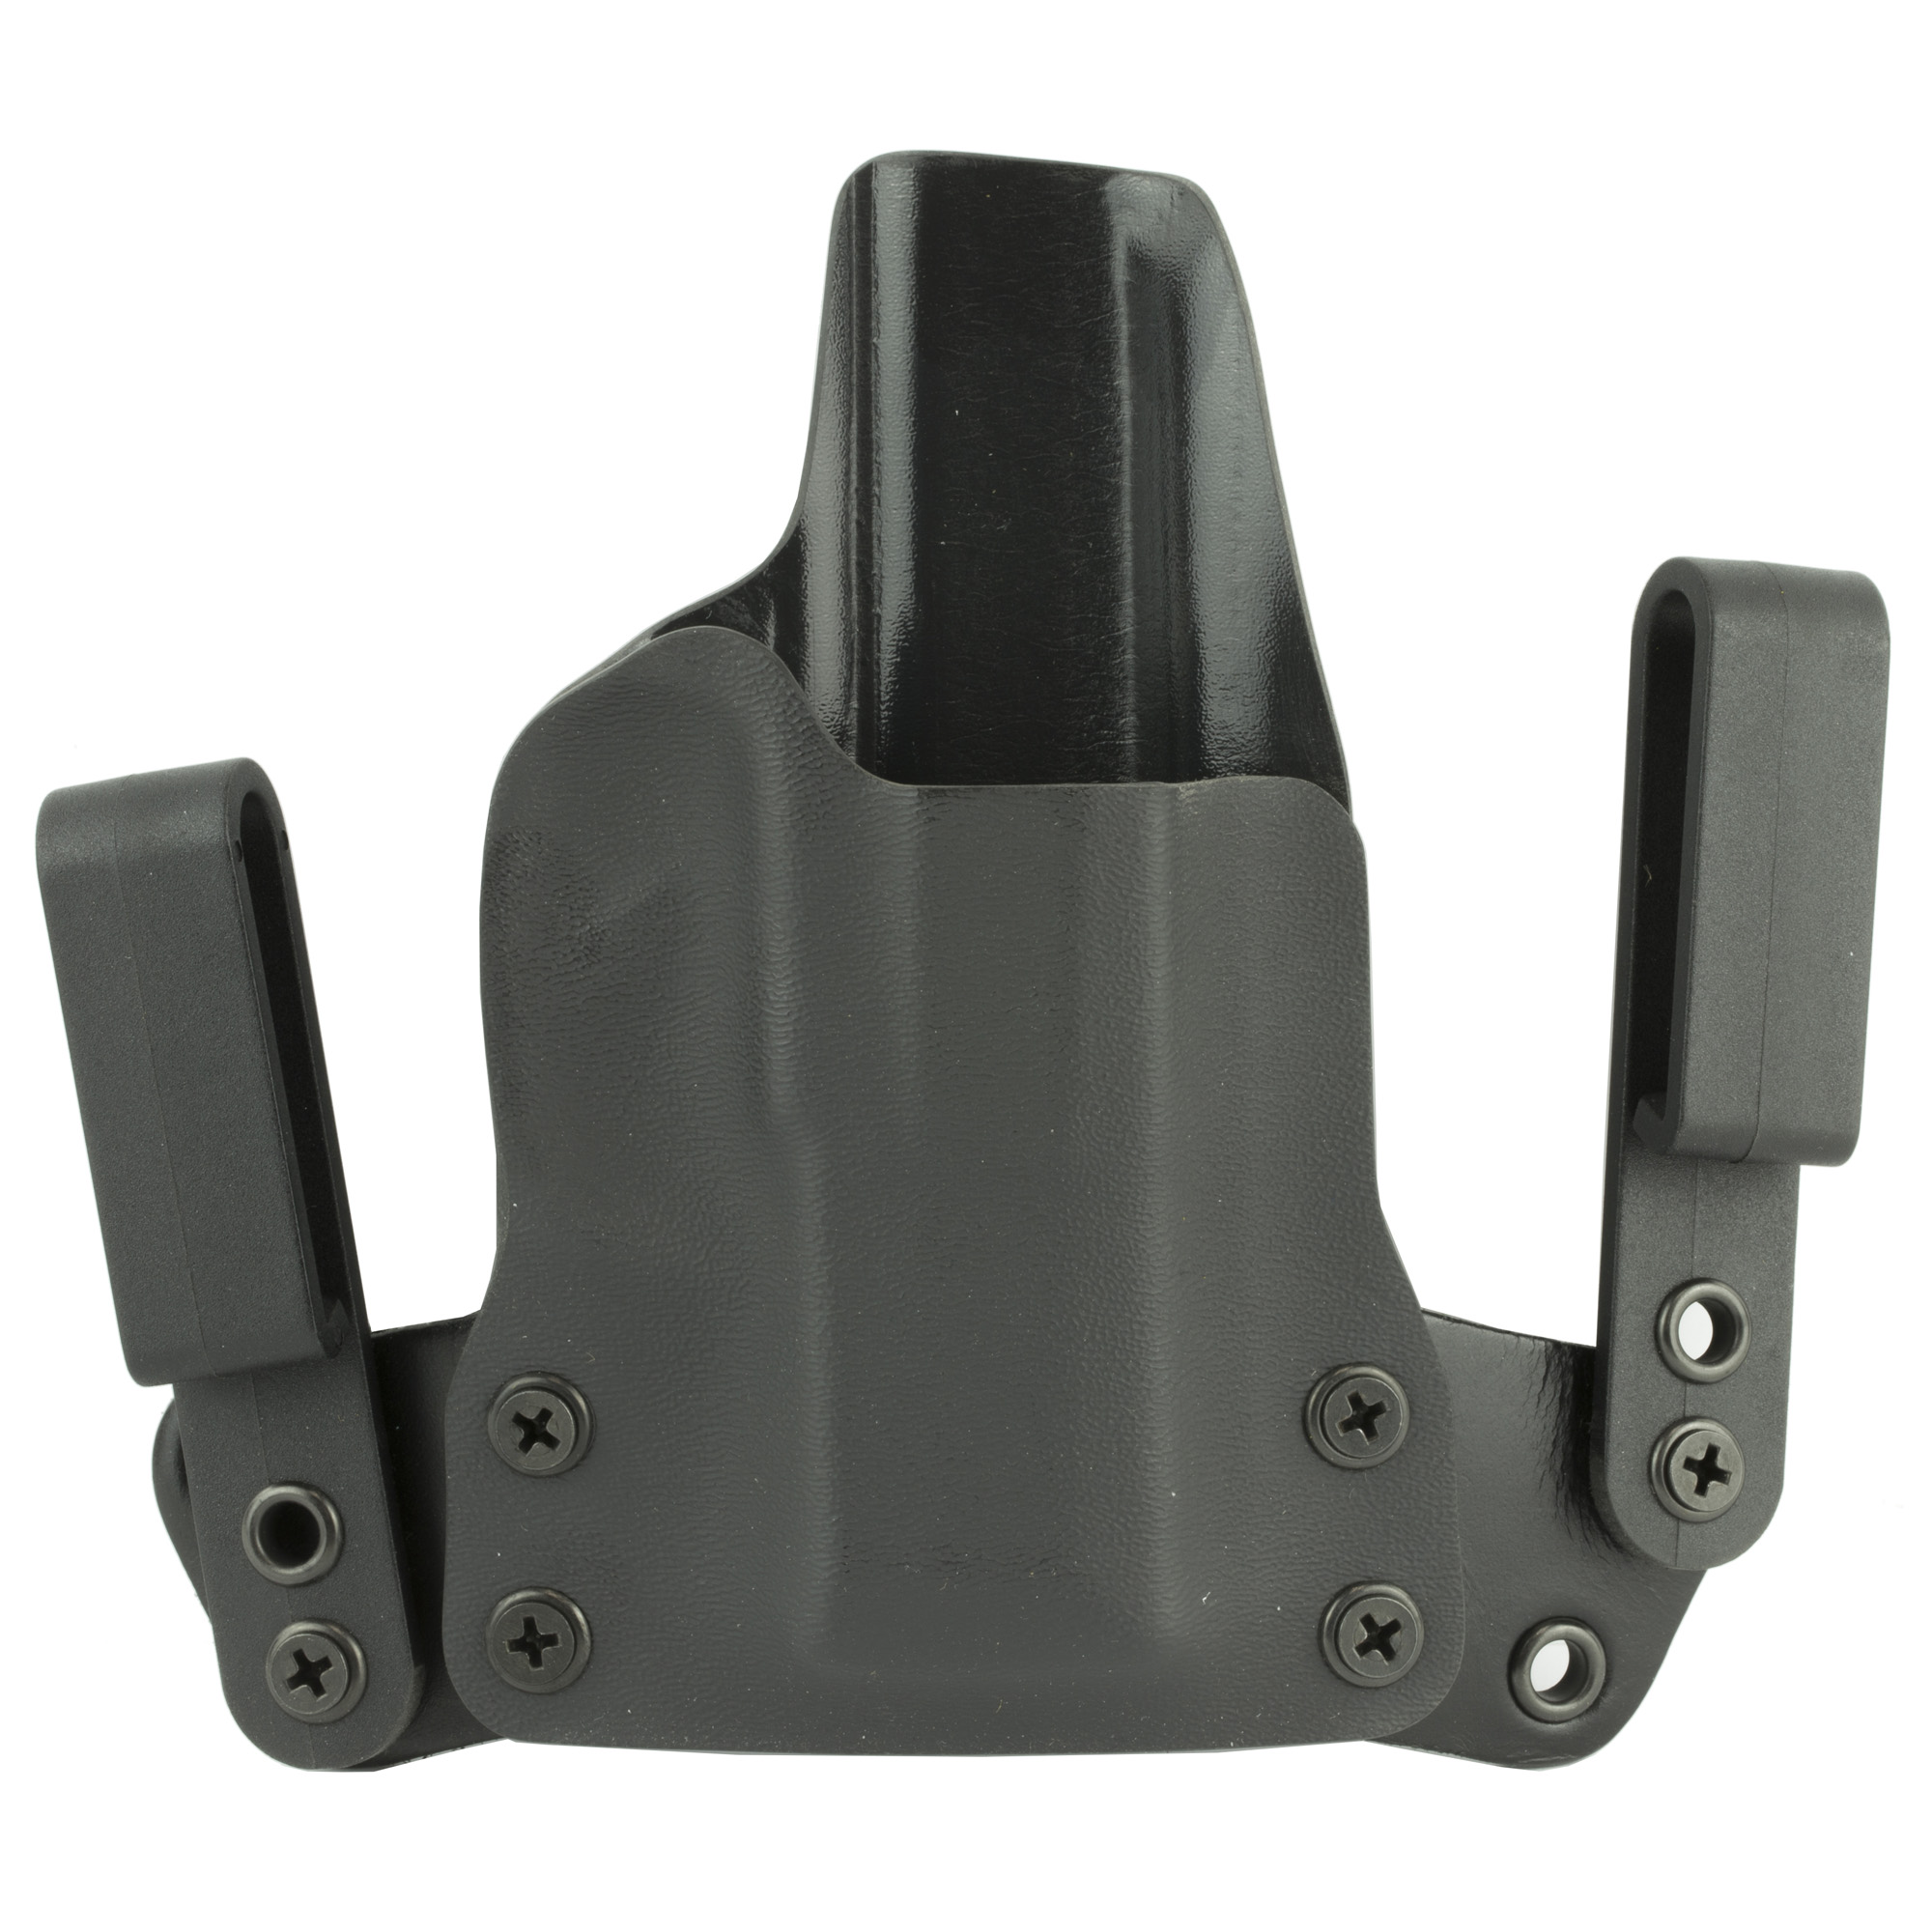 BlackPoint Tactical P365 Blackpoint Tactical Mini Wing IWB Holster Right Hand Kydex Inside Waistband Holster – Black